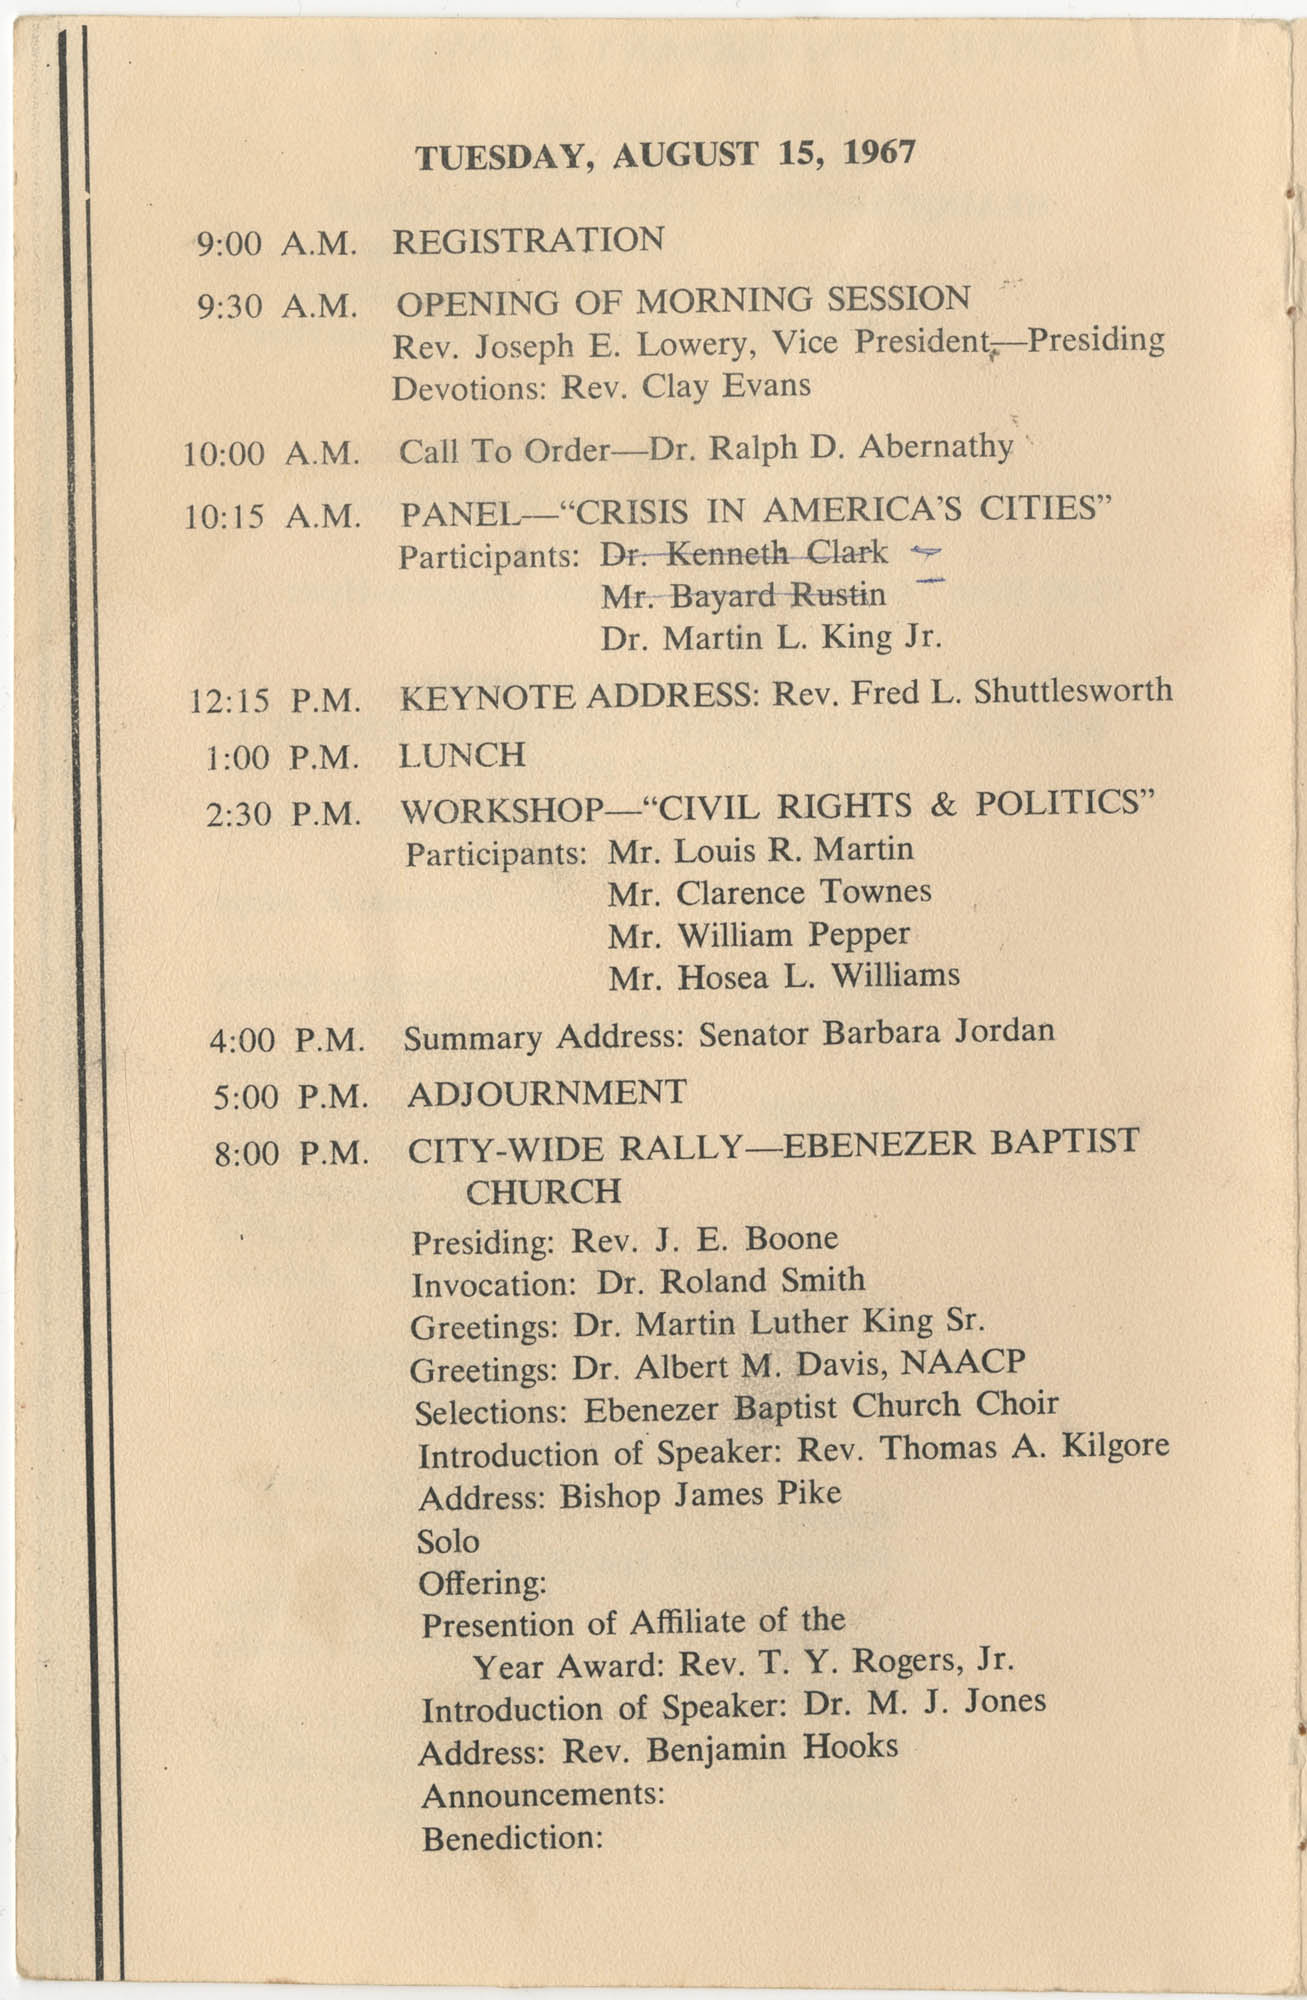 Southern Christian Leadership Conference, Tenth Anniversary Convention Program, Page 6